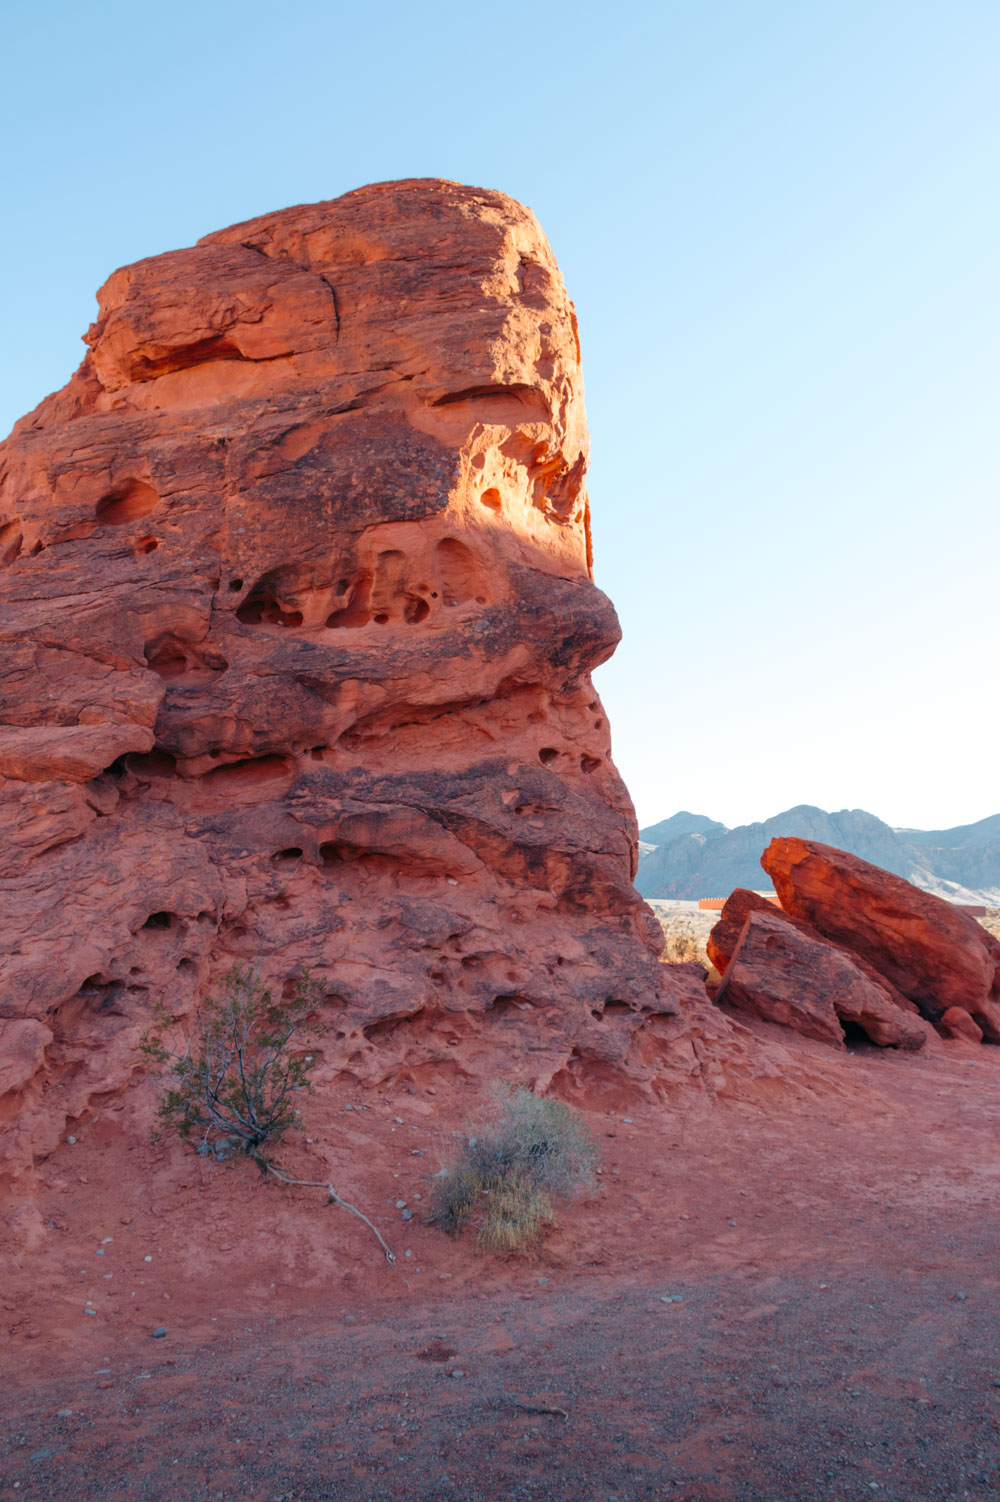 Nevada, State Park - Roads and Destinations